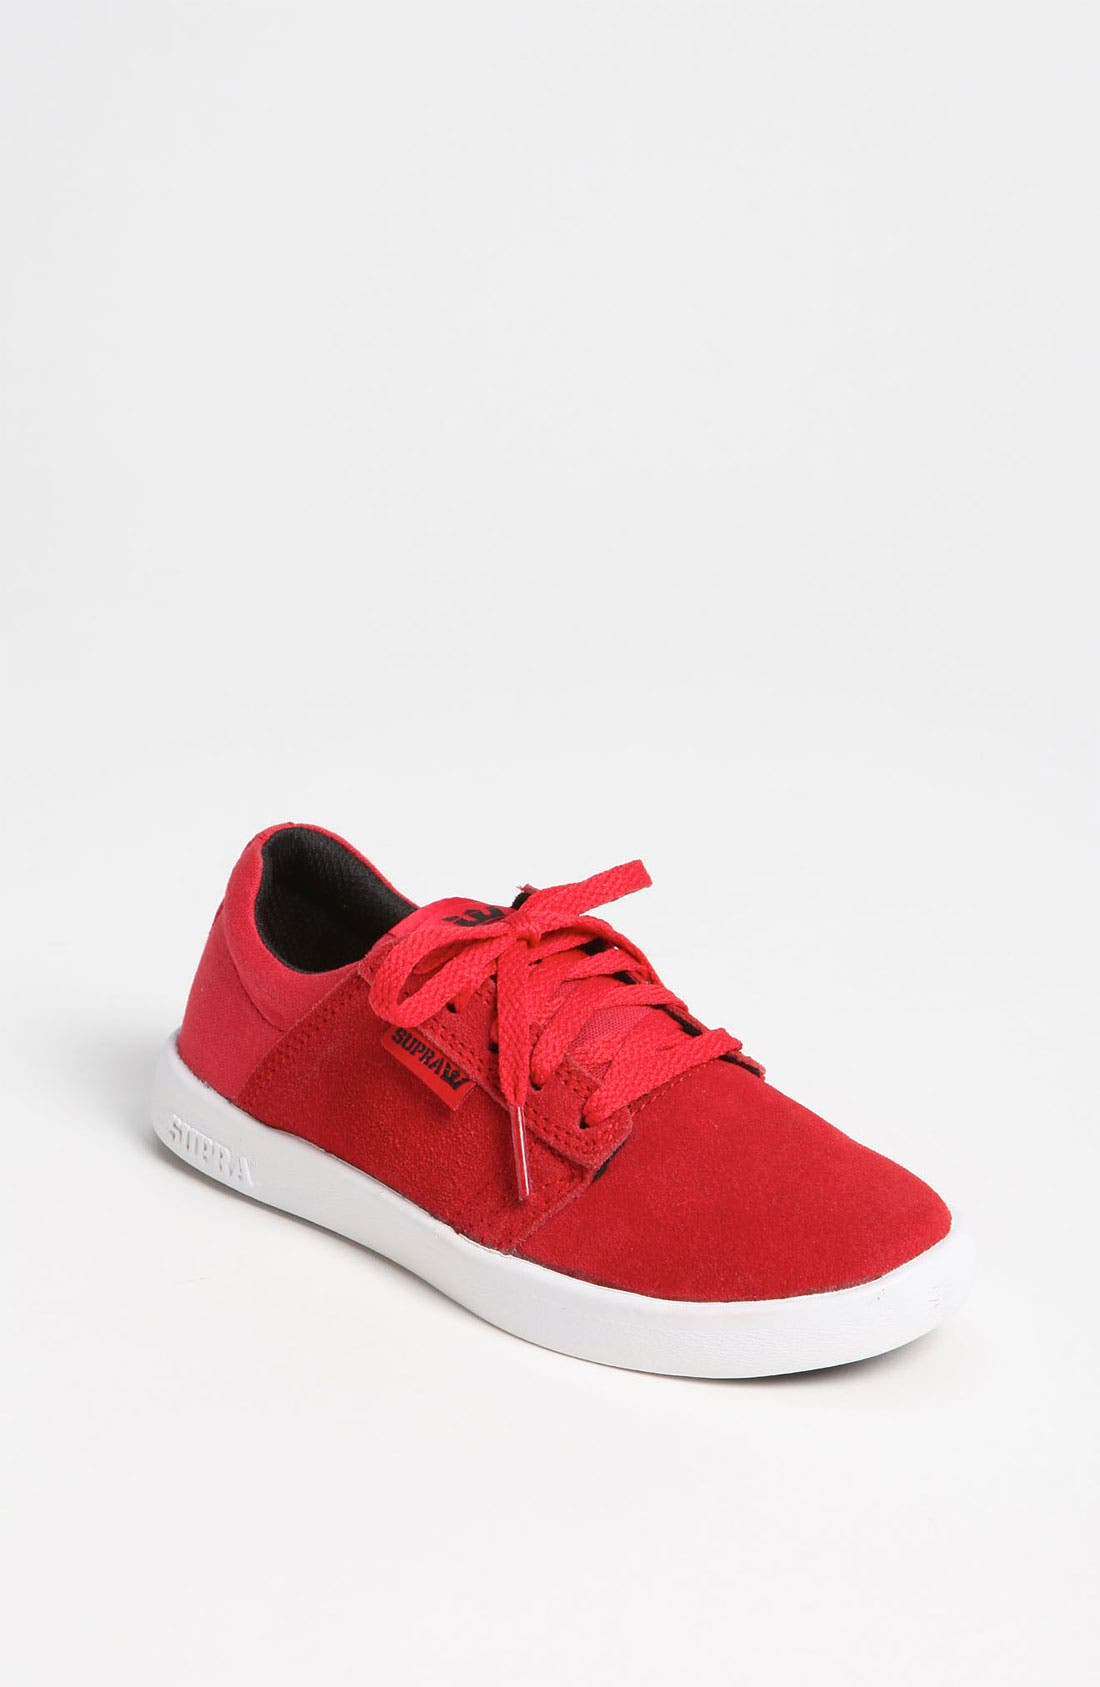 Alternate Image 1 Selected - Supra 'Westway' Sneaker (Toddler, Little Kid & Big Kid)